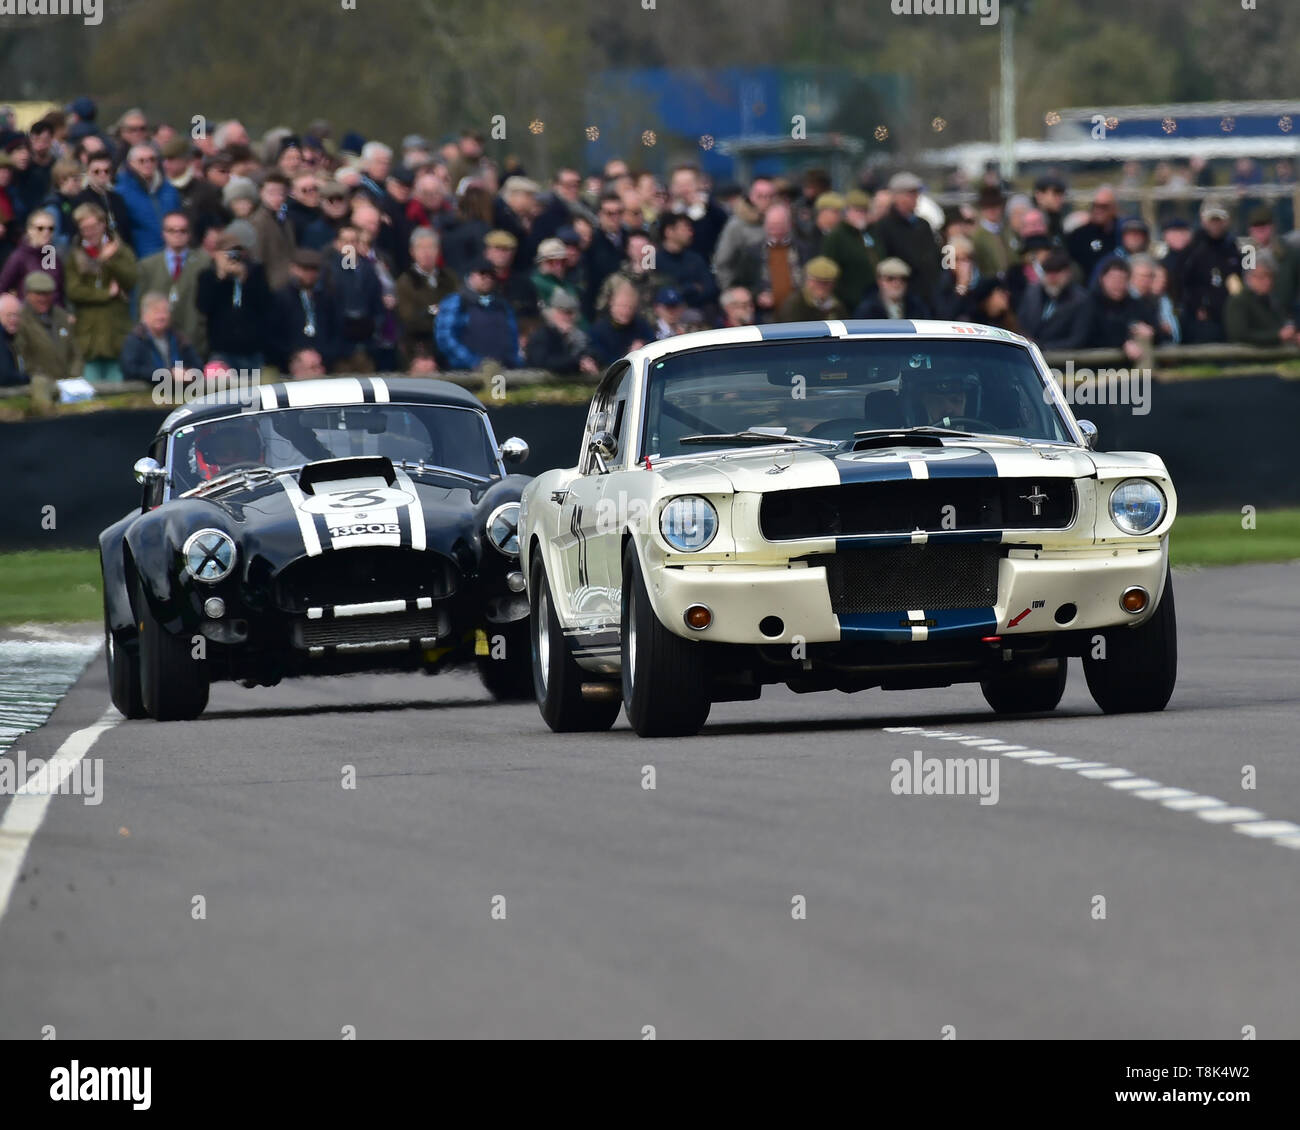 Joel Wykeham, Nicholas Sleep, Ford Shelby Mustang 350 GT, Graham Hill Trophy, Closed cockpit GT cars, Prototype cars, Spirit of the RAC TT Races 1960- - Stock Image